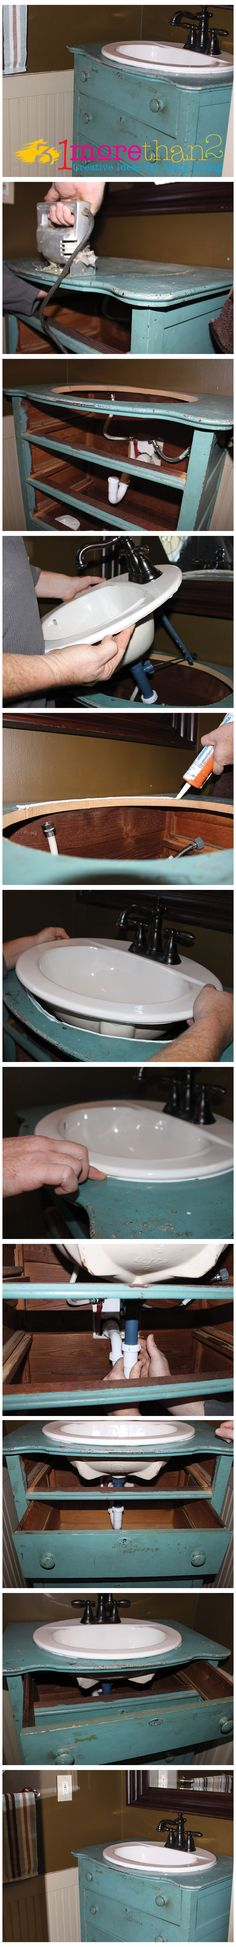 how to put a sink in old dresser